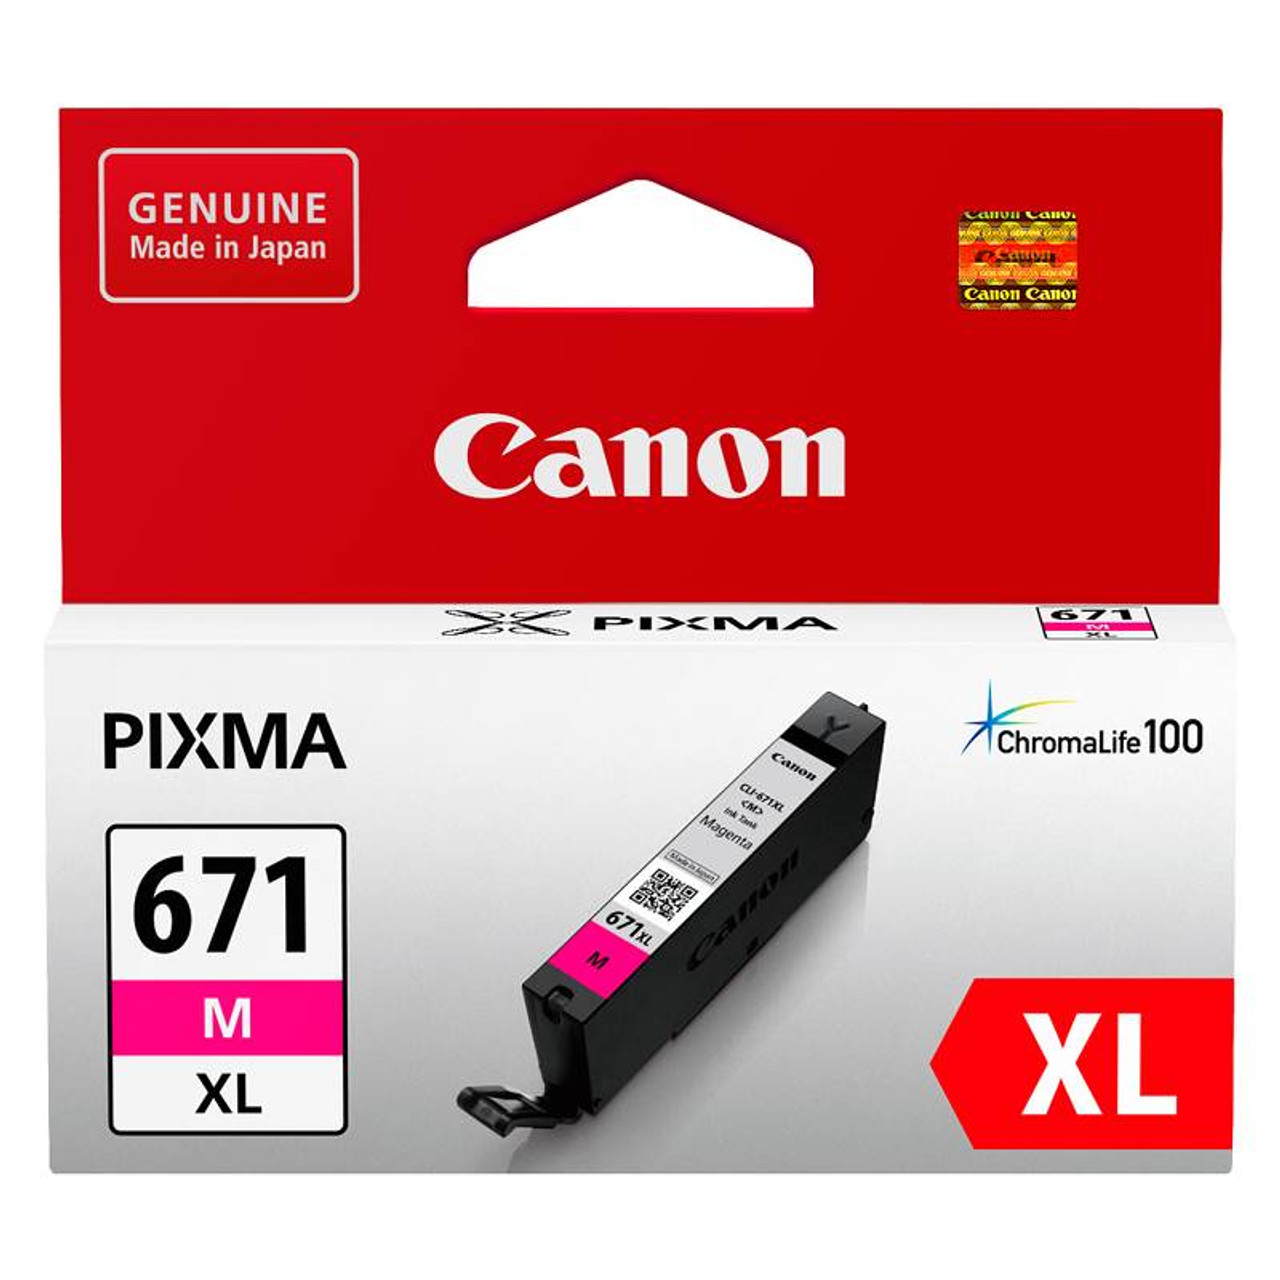 Image for Canon CLI-671XLM High Capacity Mag Ink Cartridge Up To 645 pages CX Computer Superstore